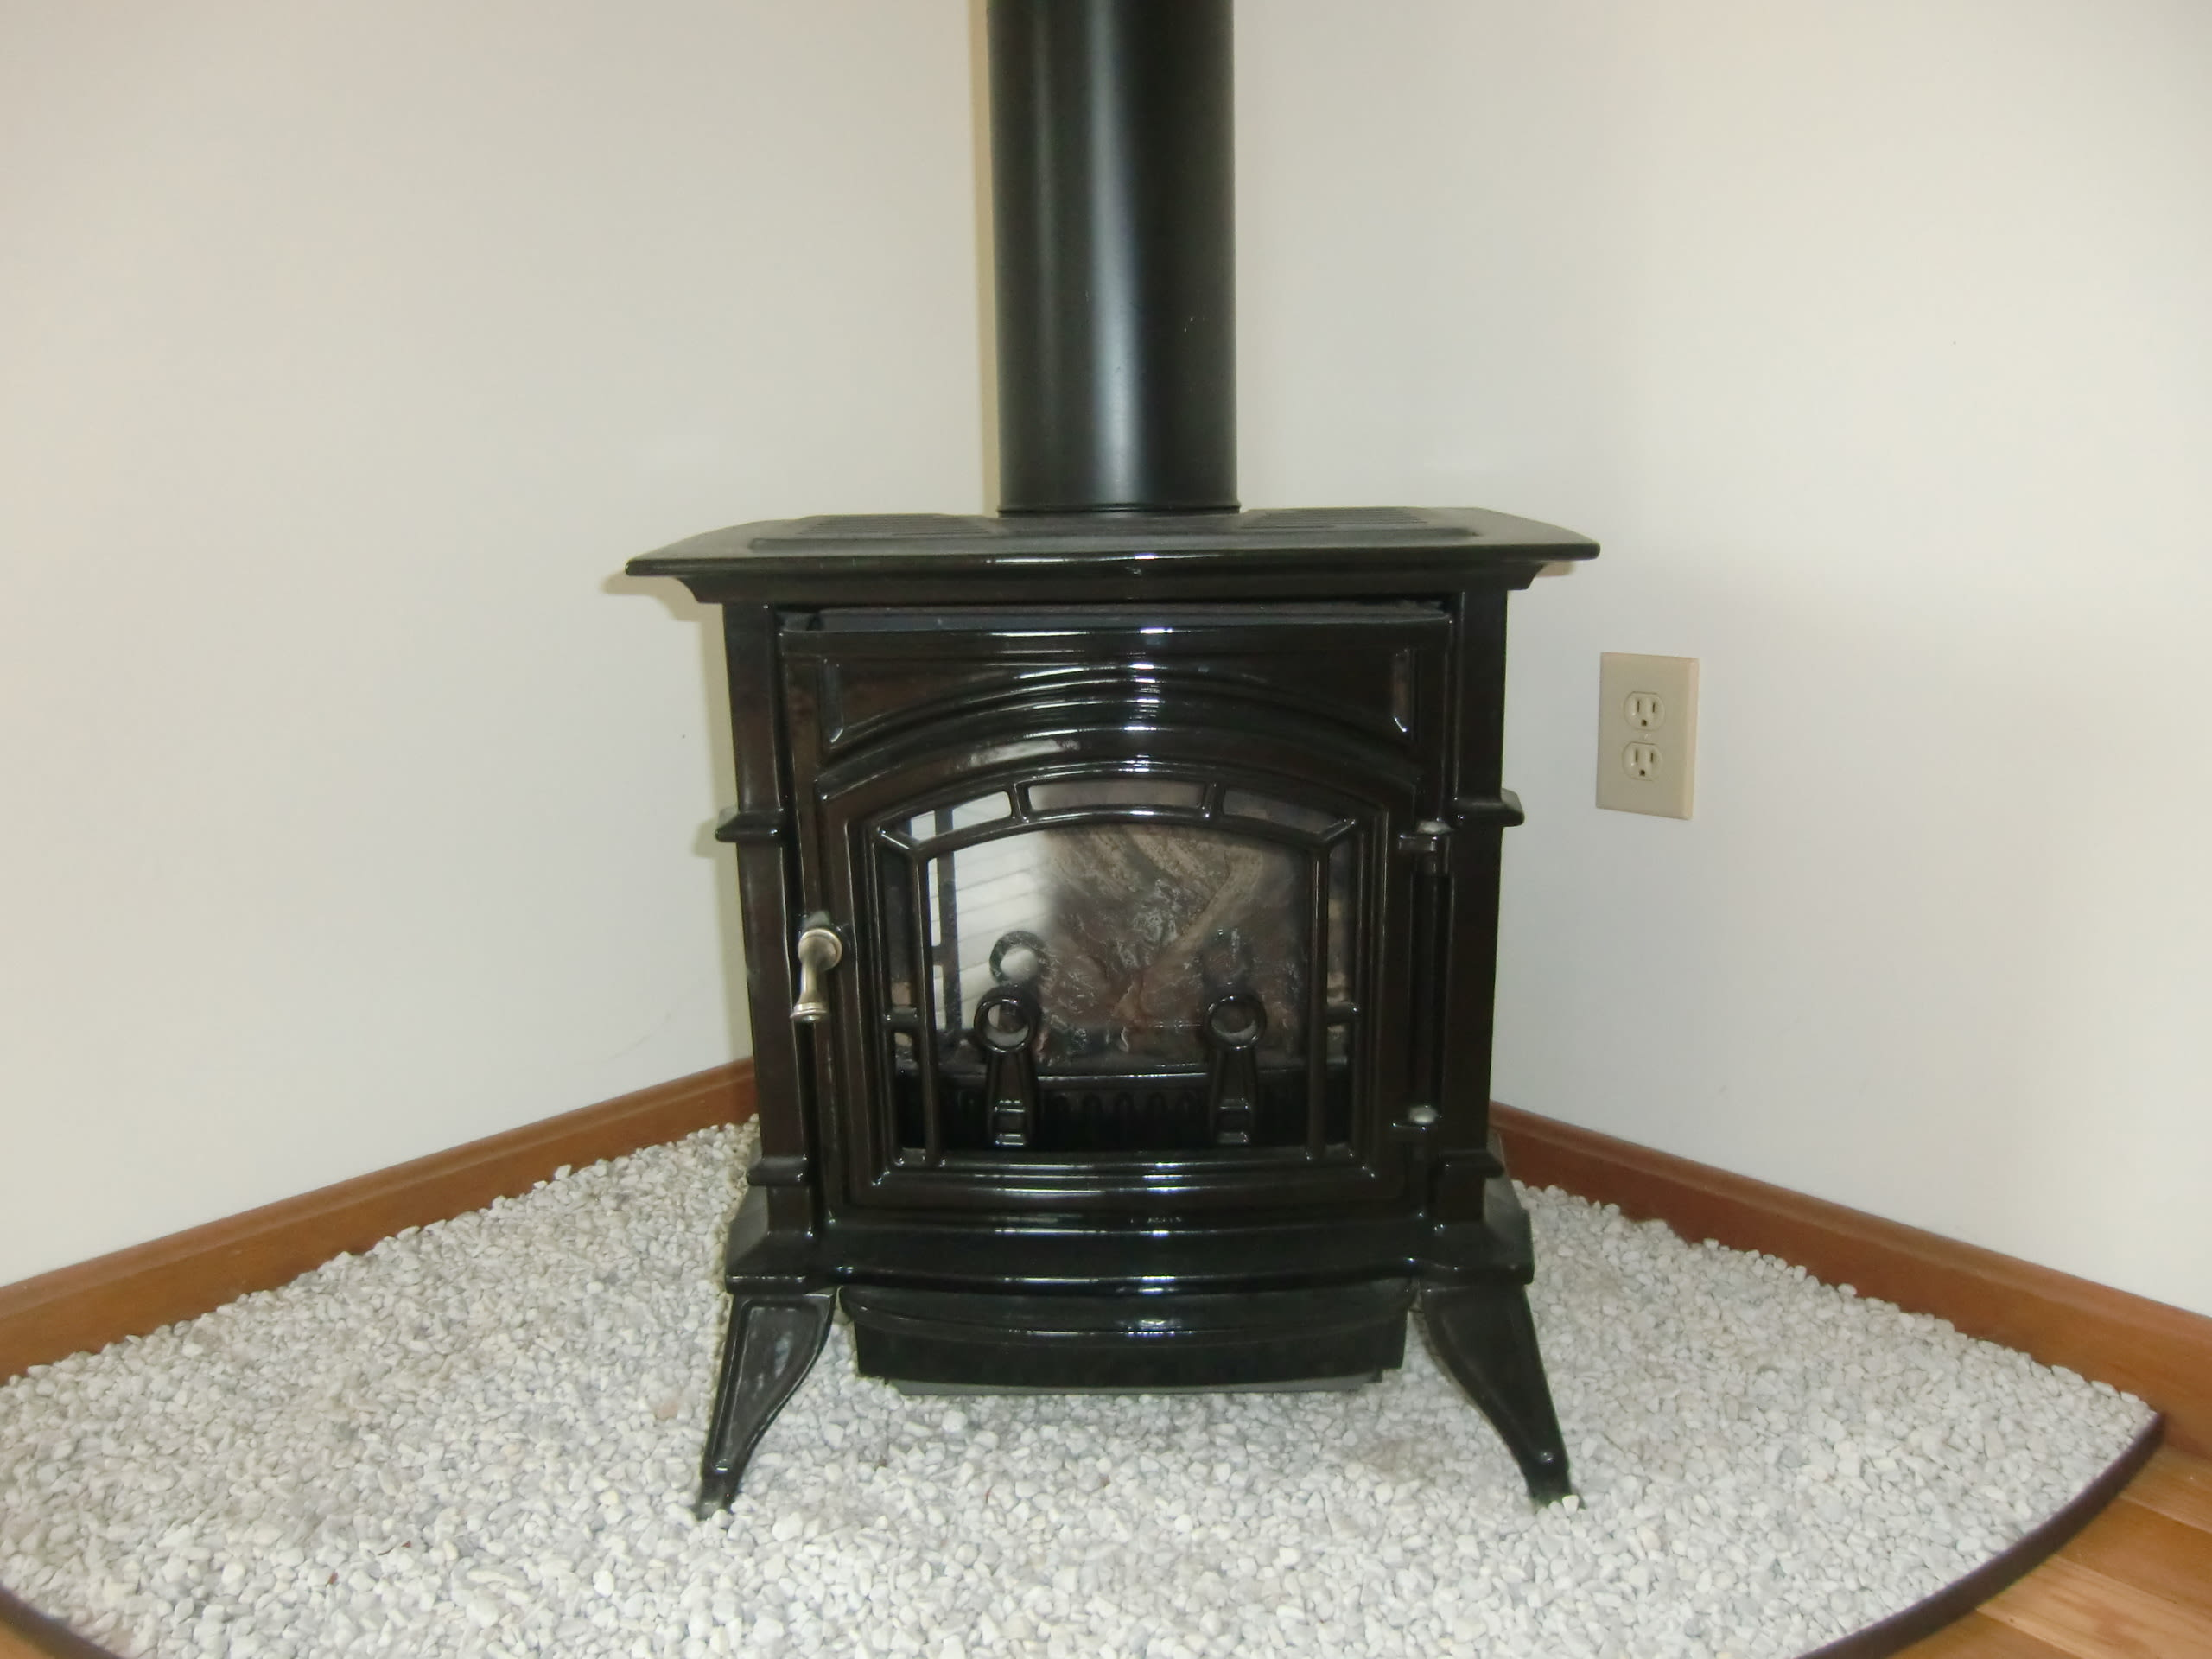 Gas Stove for Chilly Vermont Nights